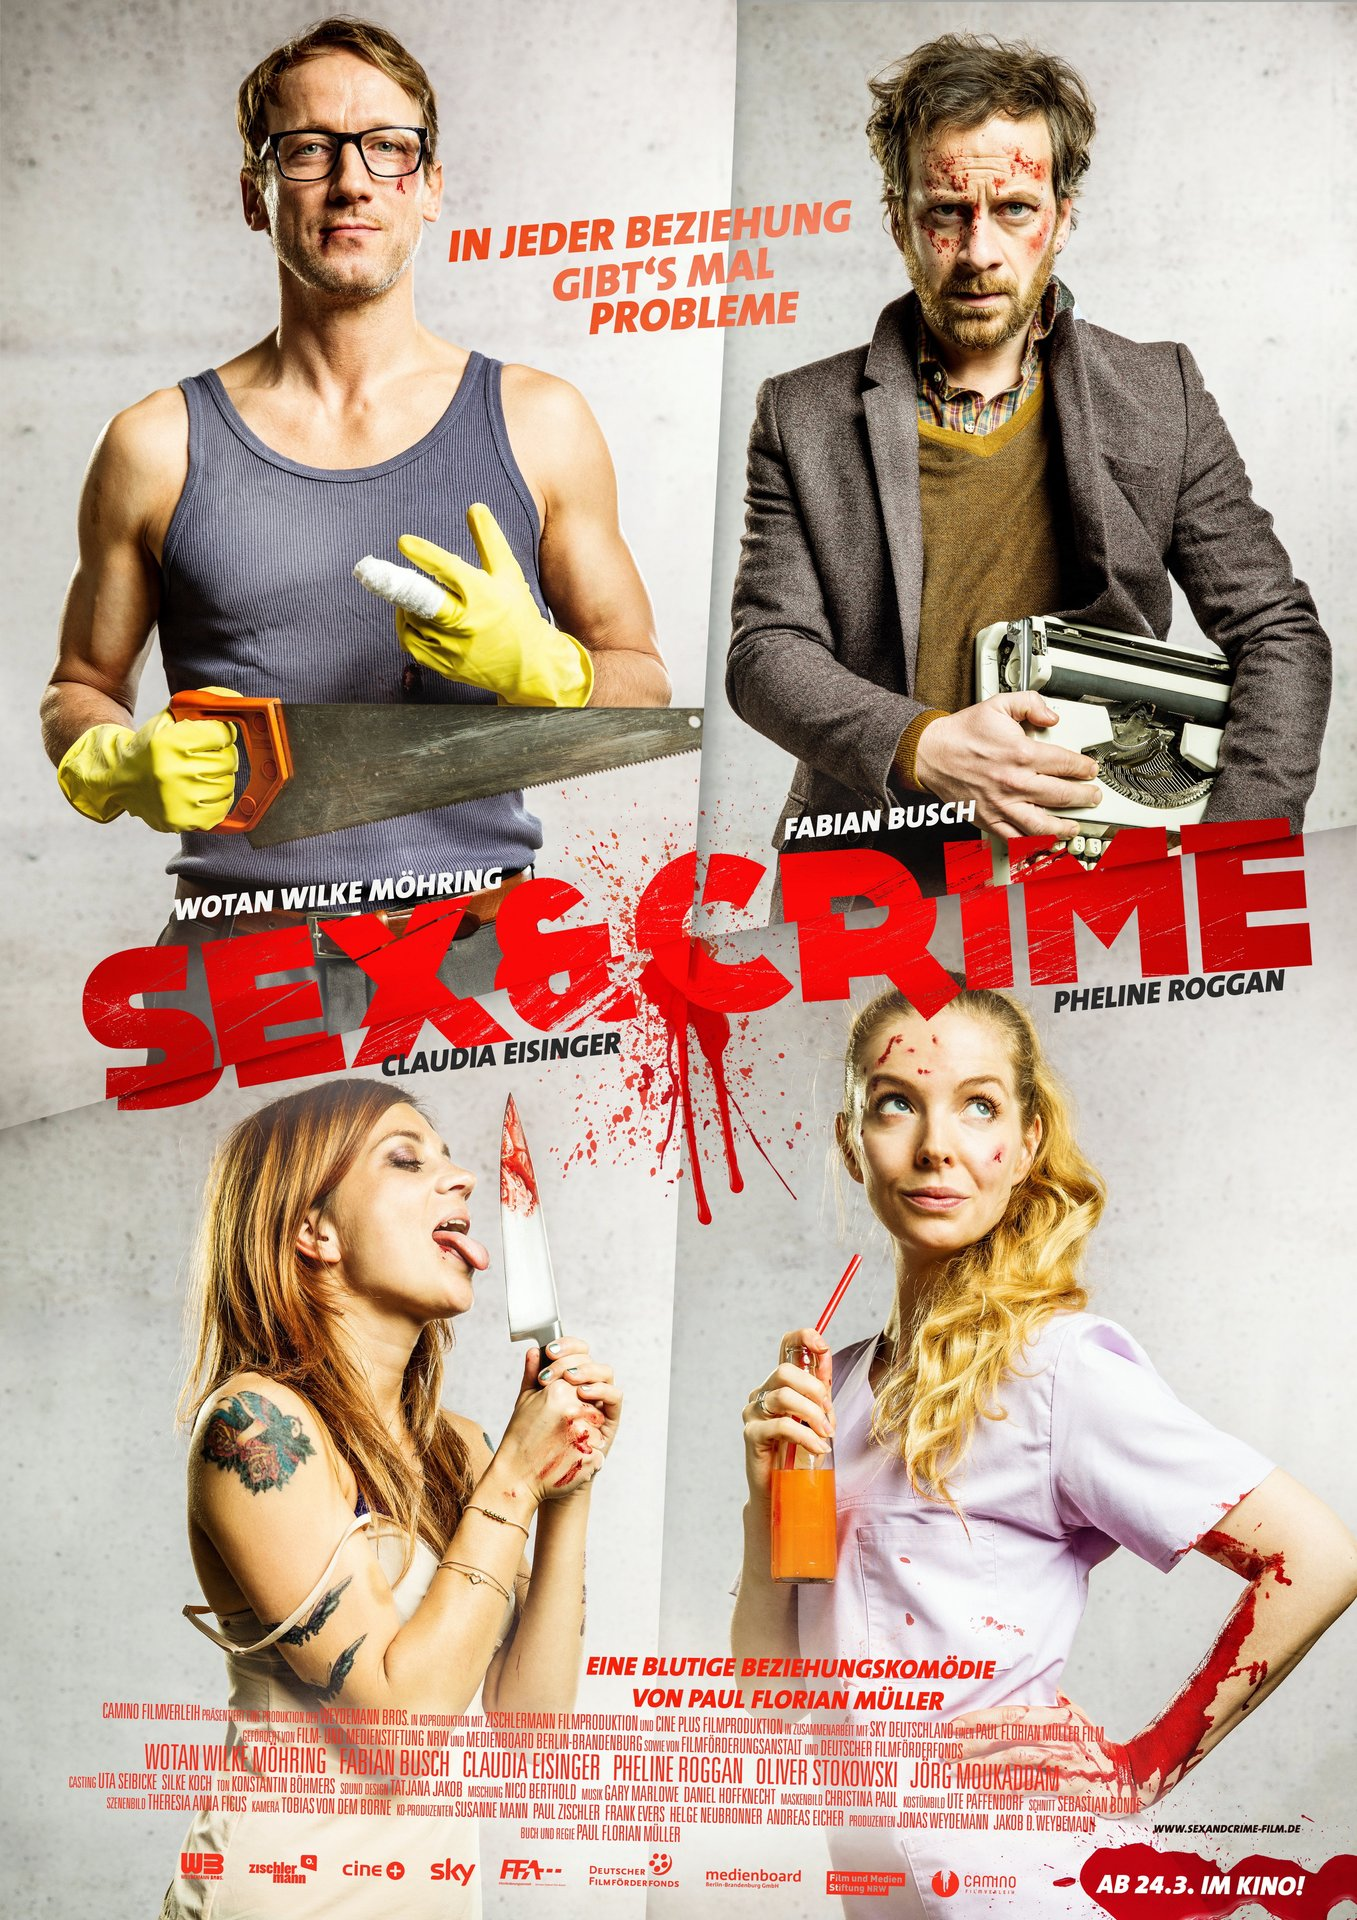 Apologise, Sex crimes poster opinion you